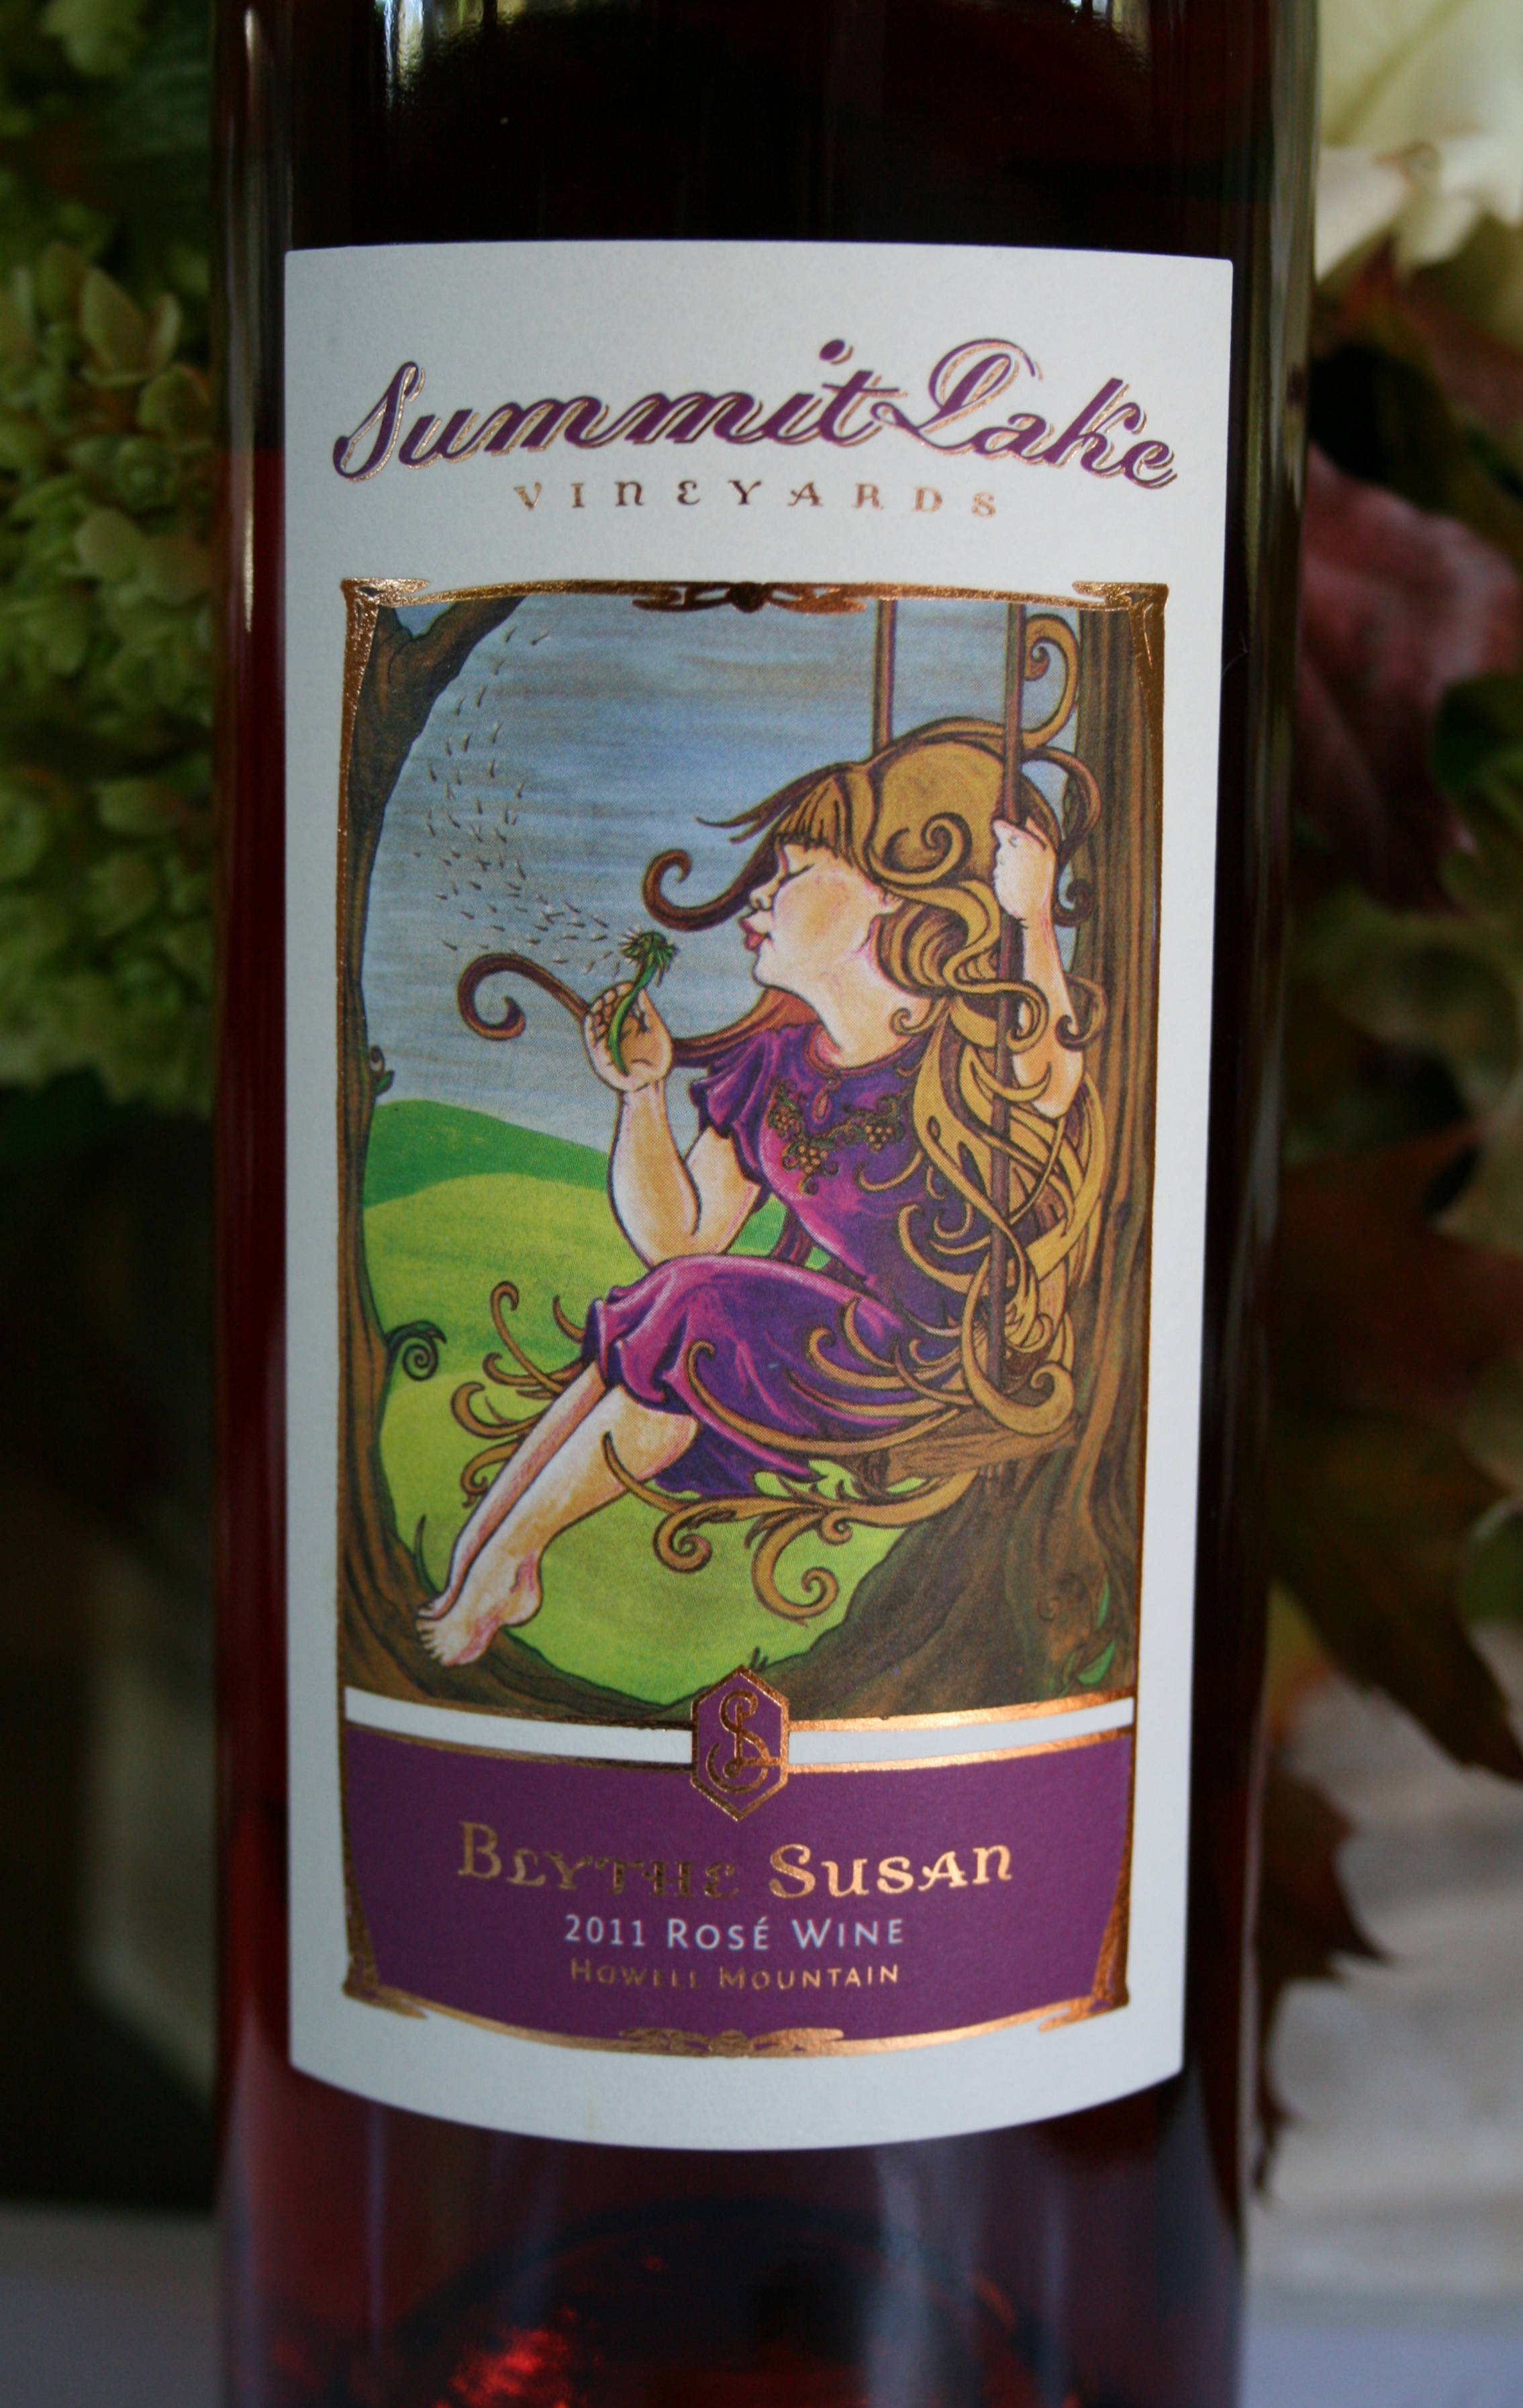 2014 Blythe Susan Rose Howell Mountain, Napa Valley - Summit Lake Vineyards & Winery